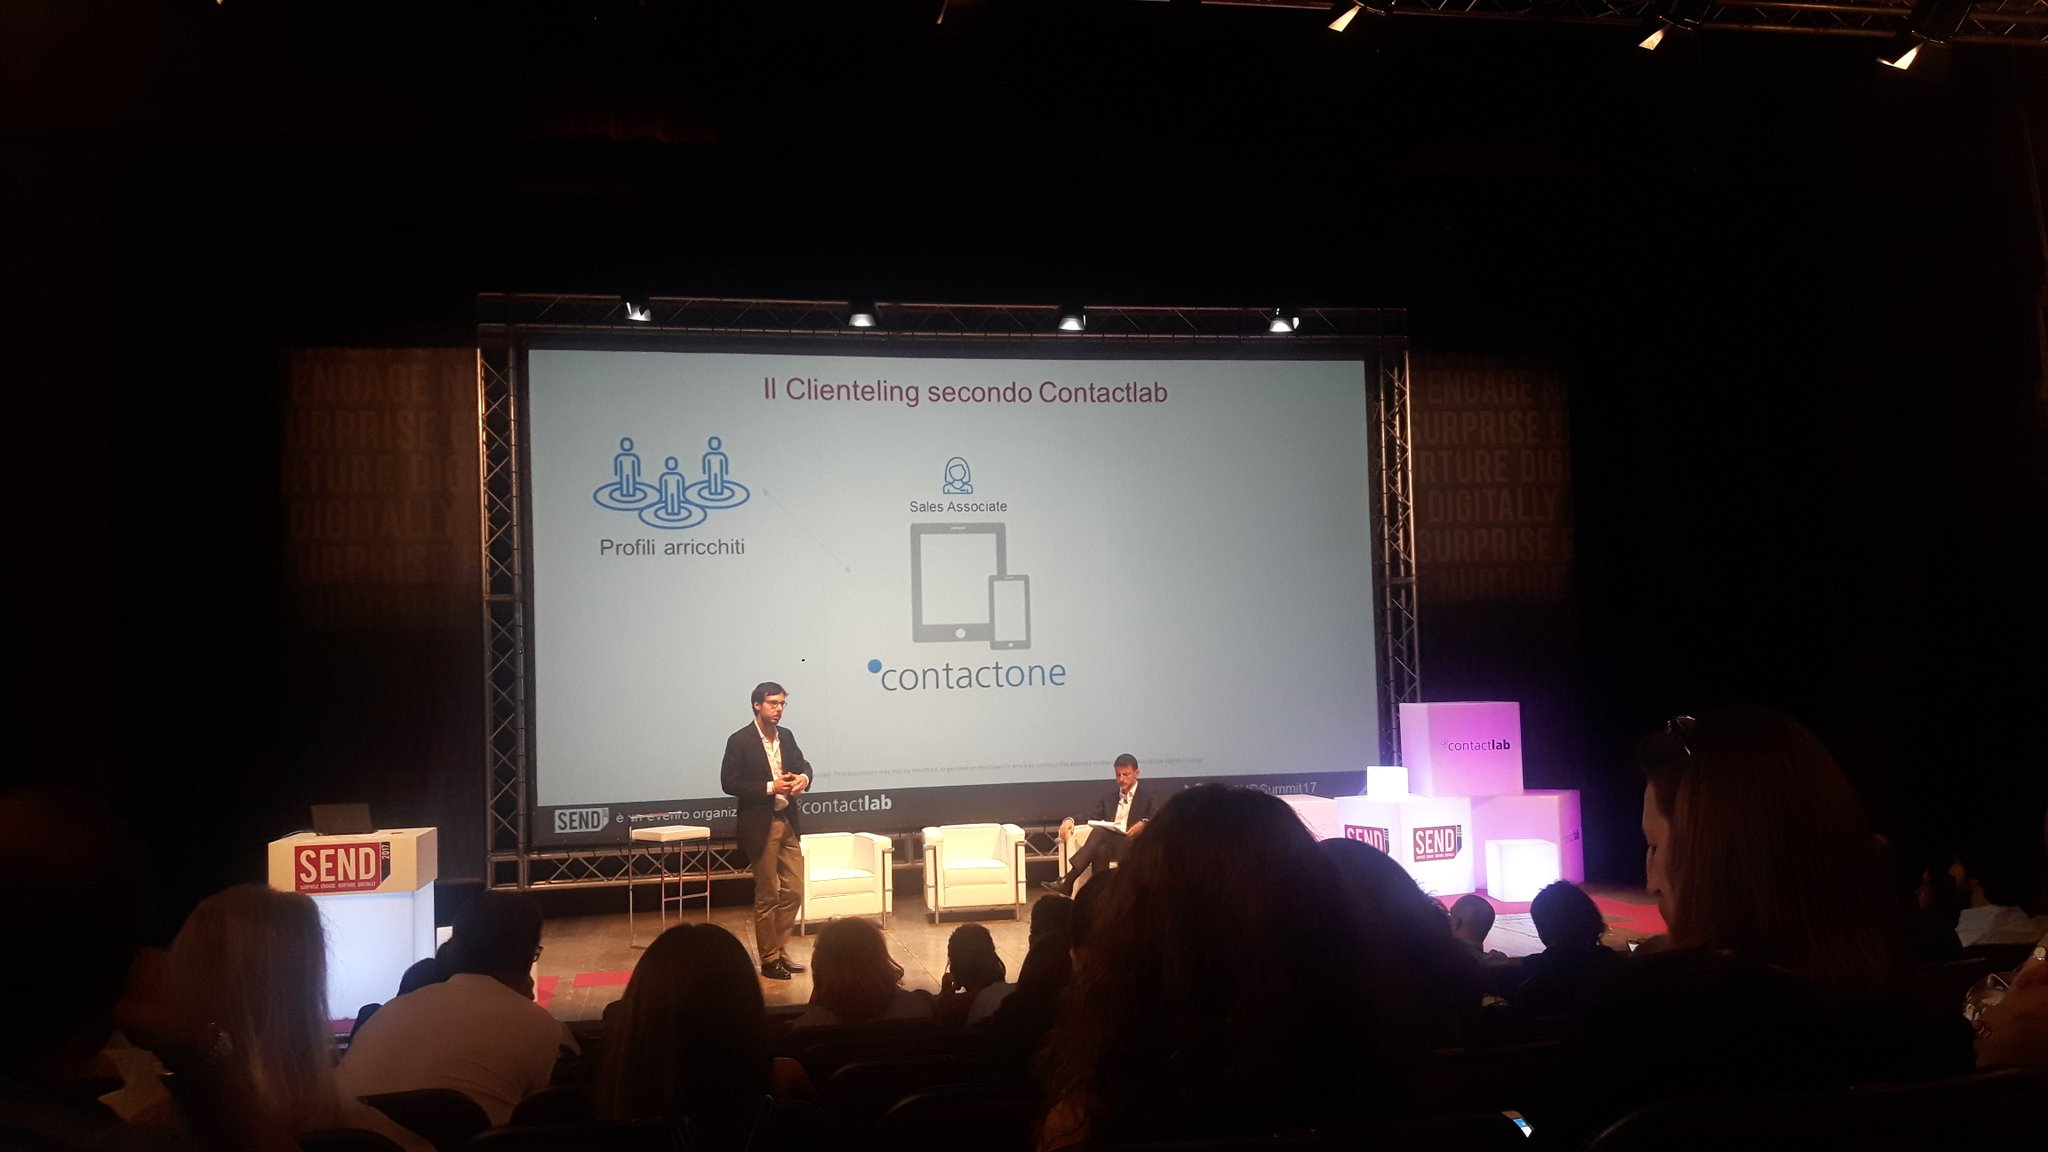 Il clienteling secondo @ContactLab #SENDSummit17 on stage #hellocontactone https://t.co/CCXFkzXHiK